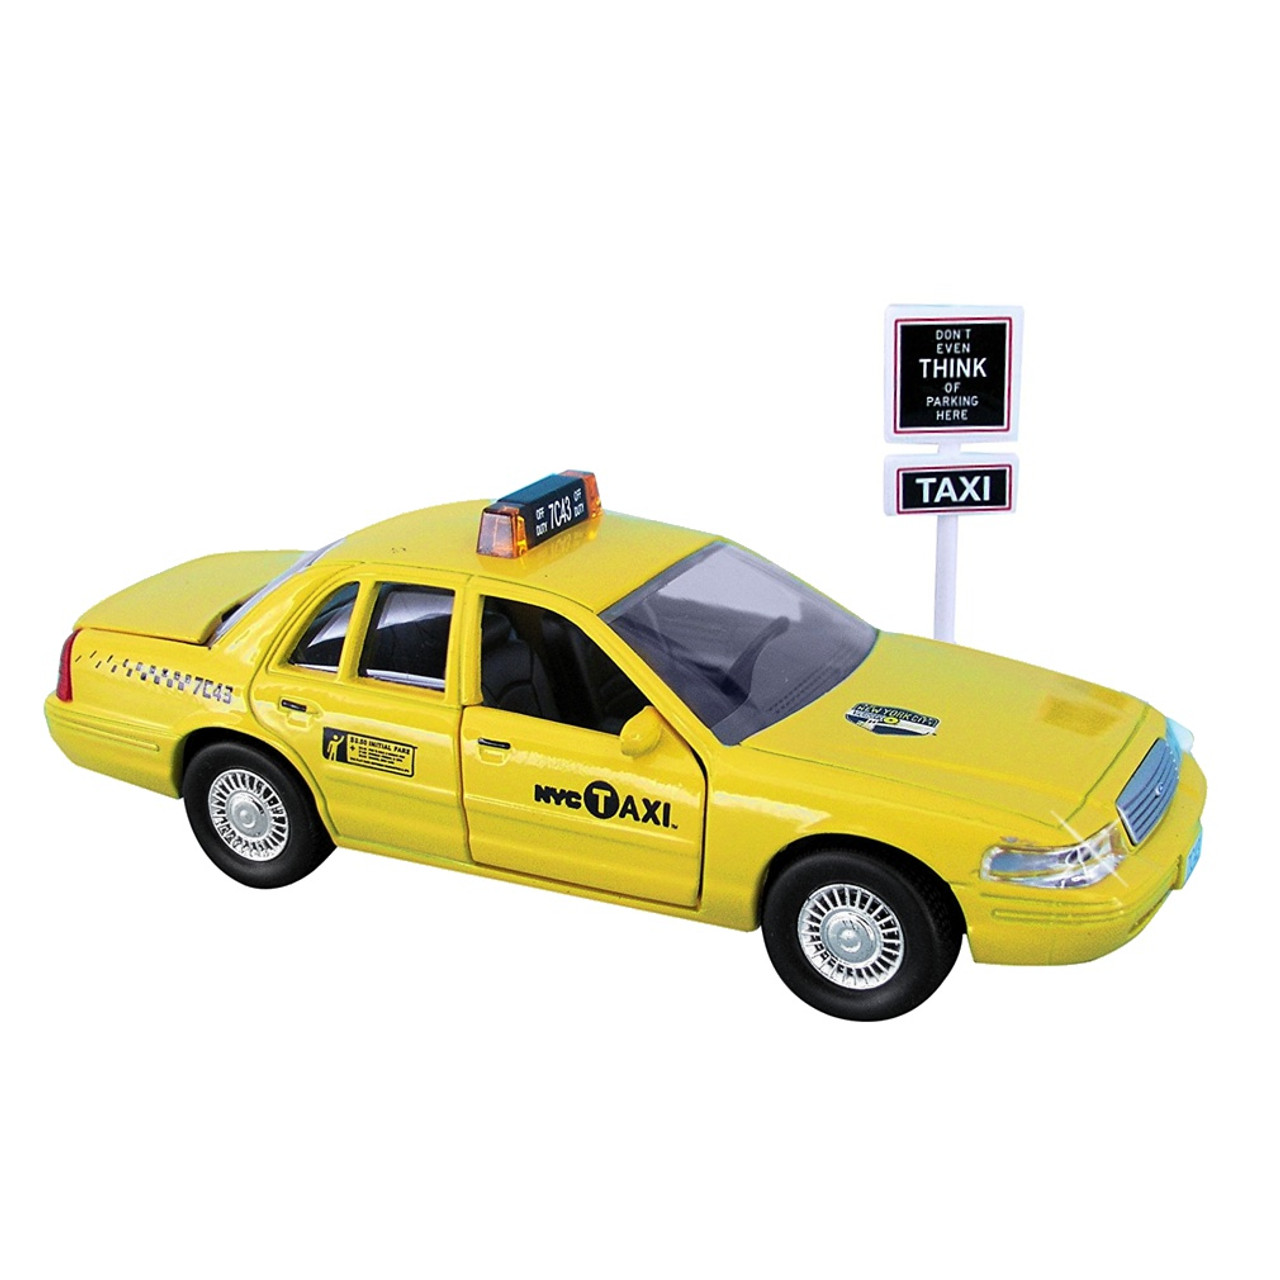 Taxi Cab And Sign Set